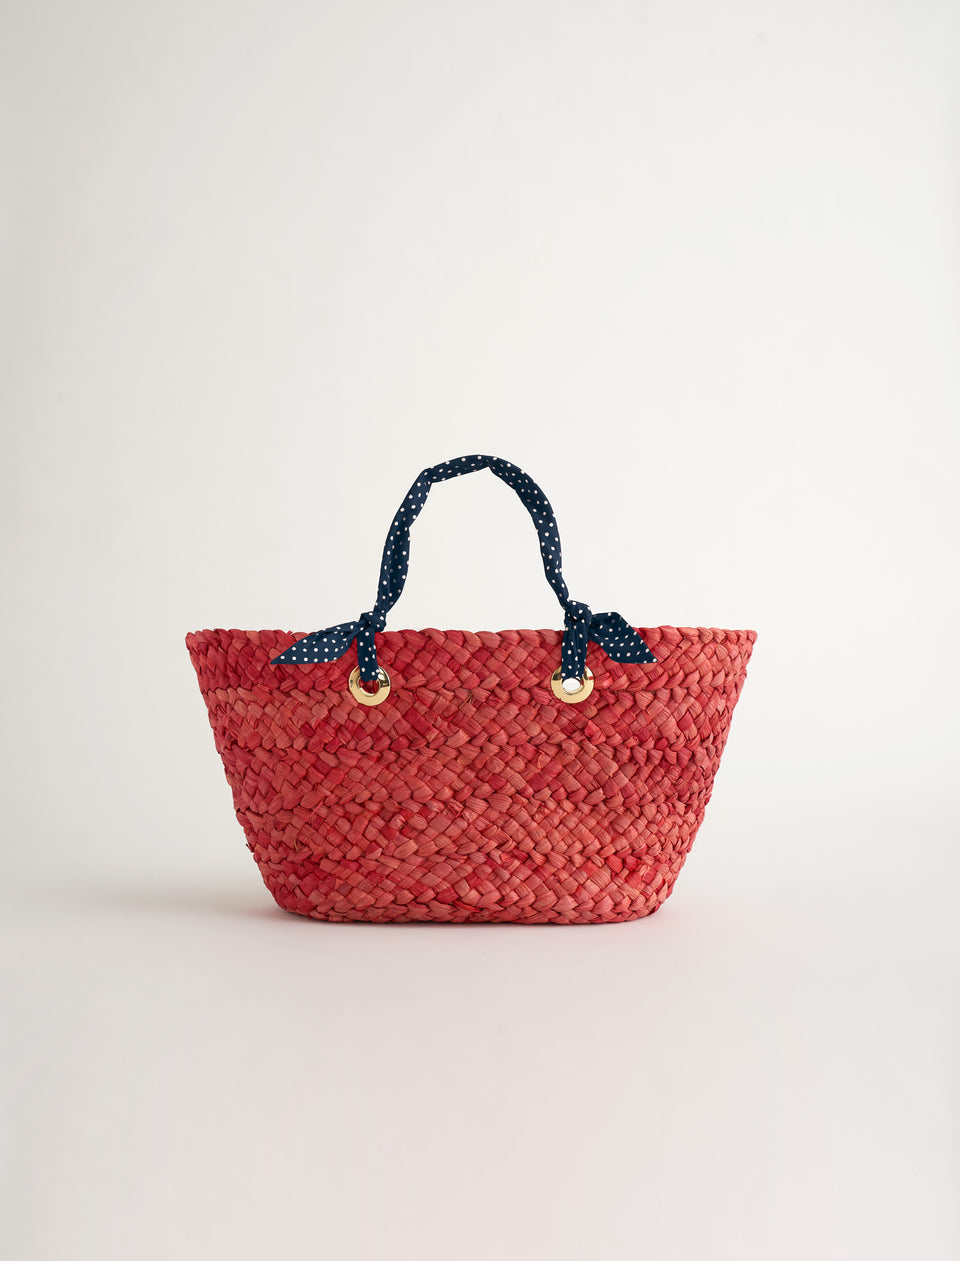 AM Mini Straw Tote Bag